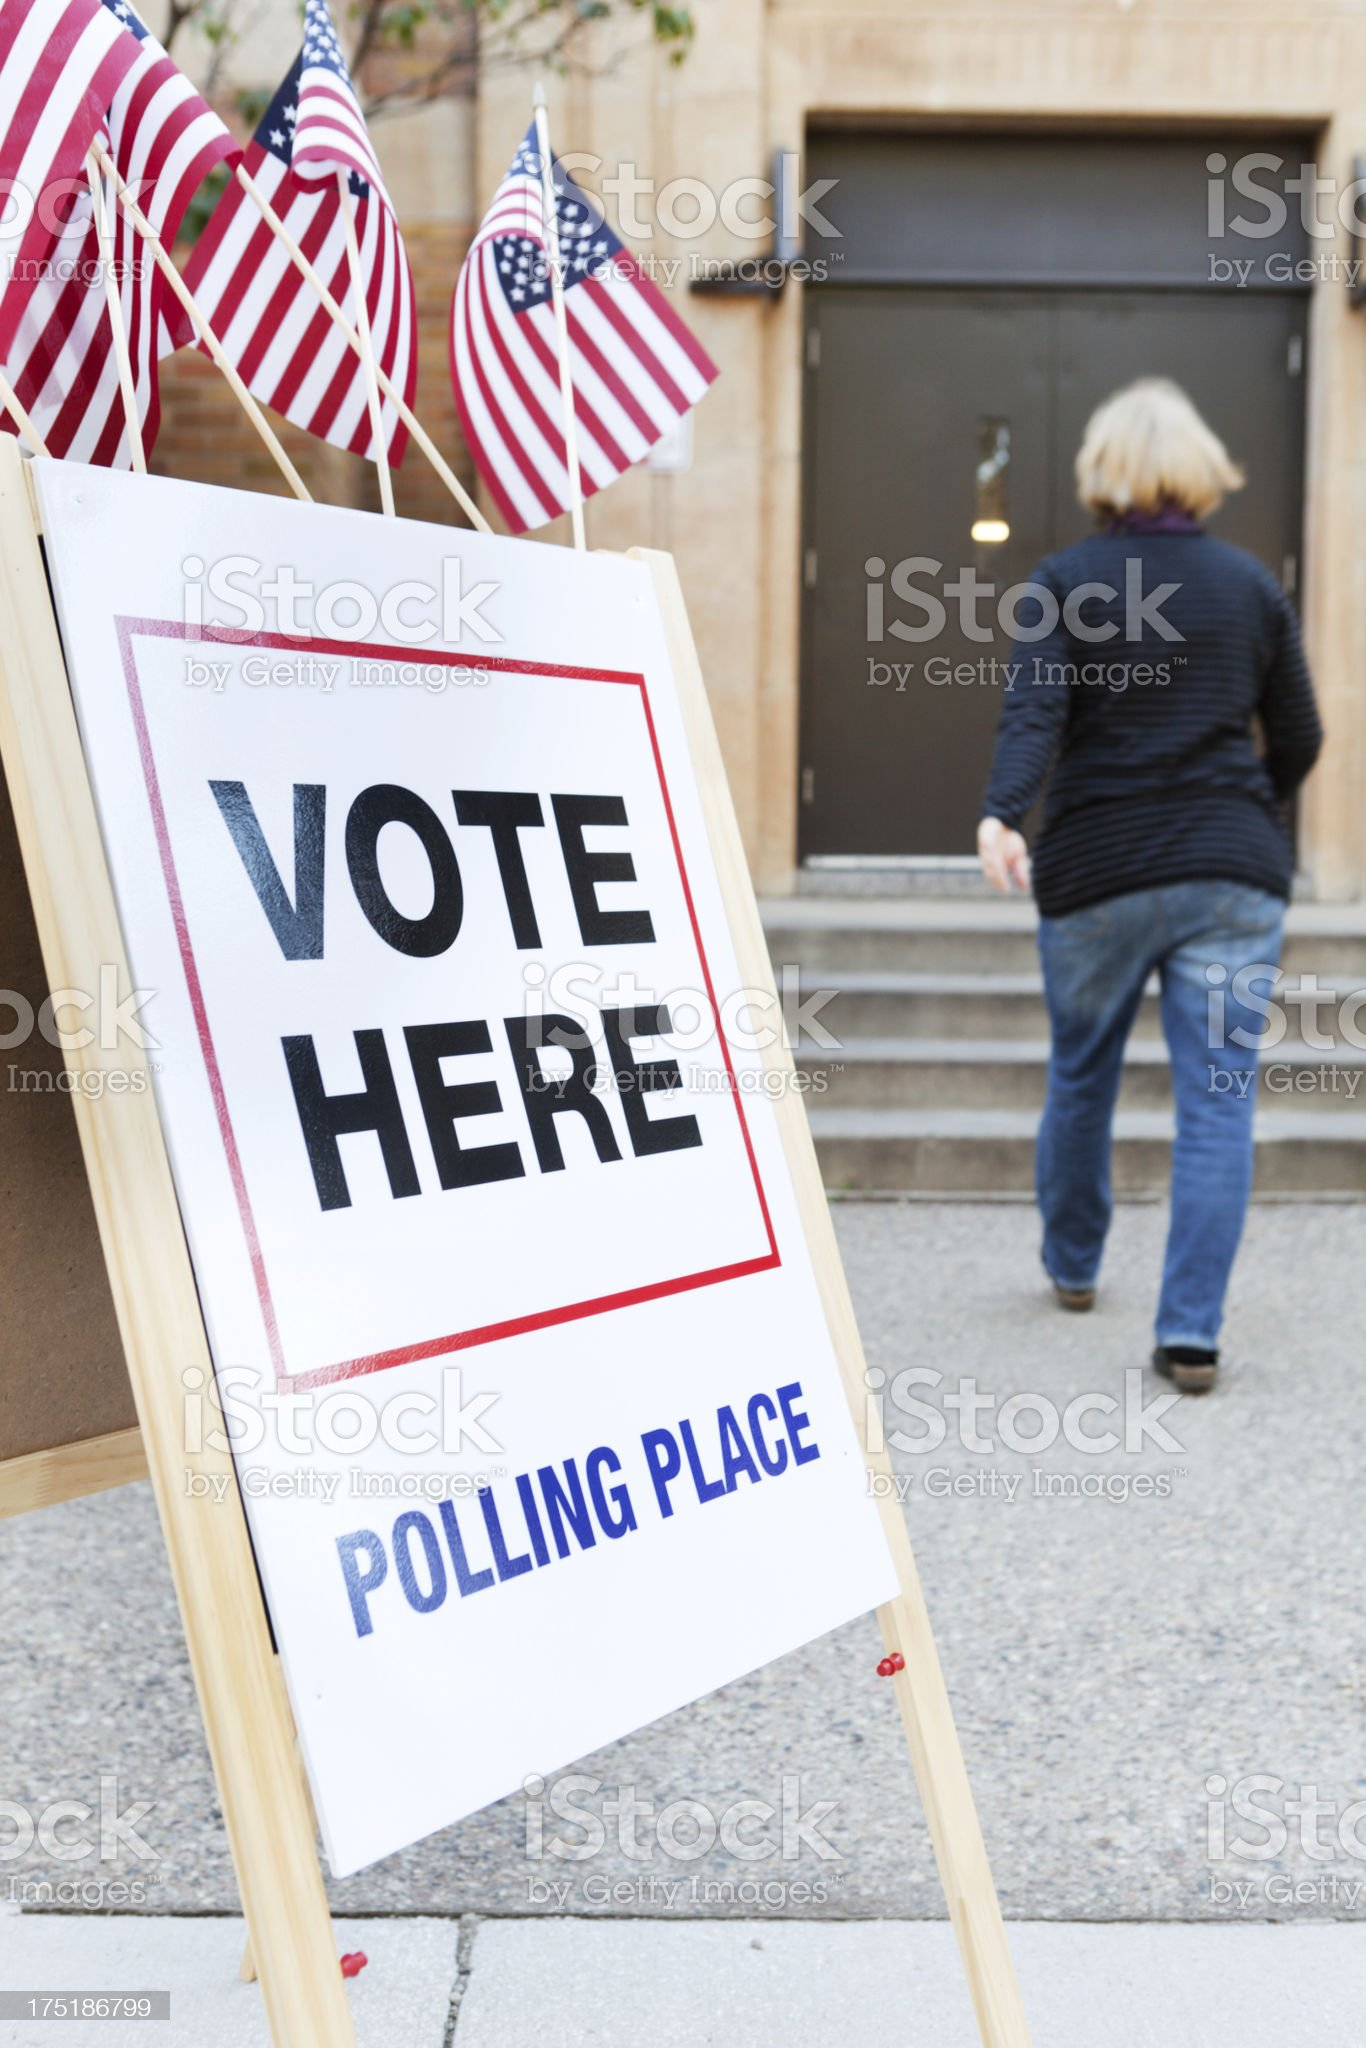 USA Woman Voter Entering Voting Polling Place for Government Election royalty-free stock photo